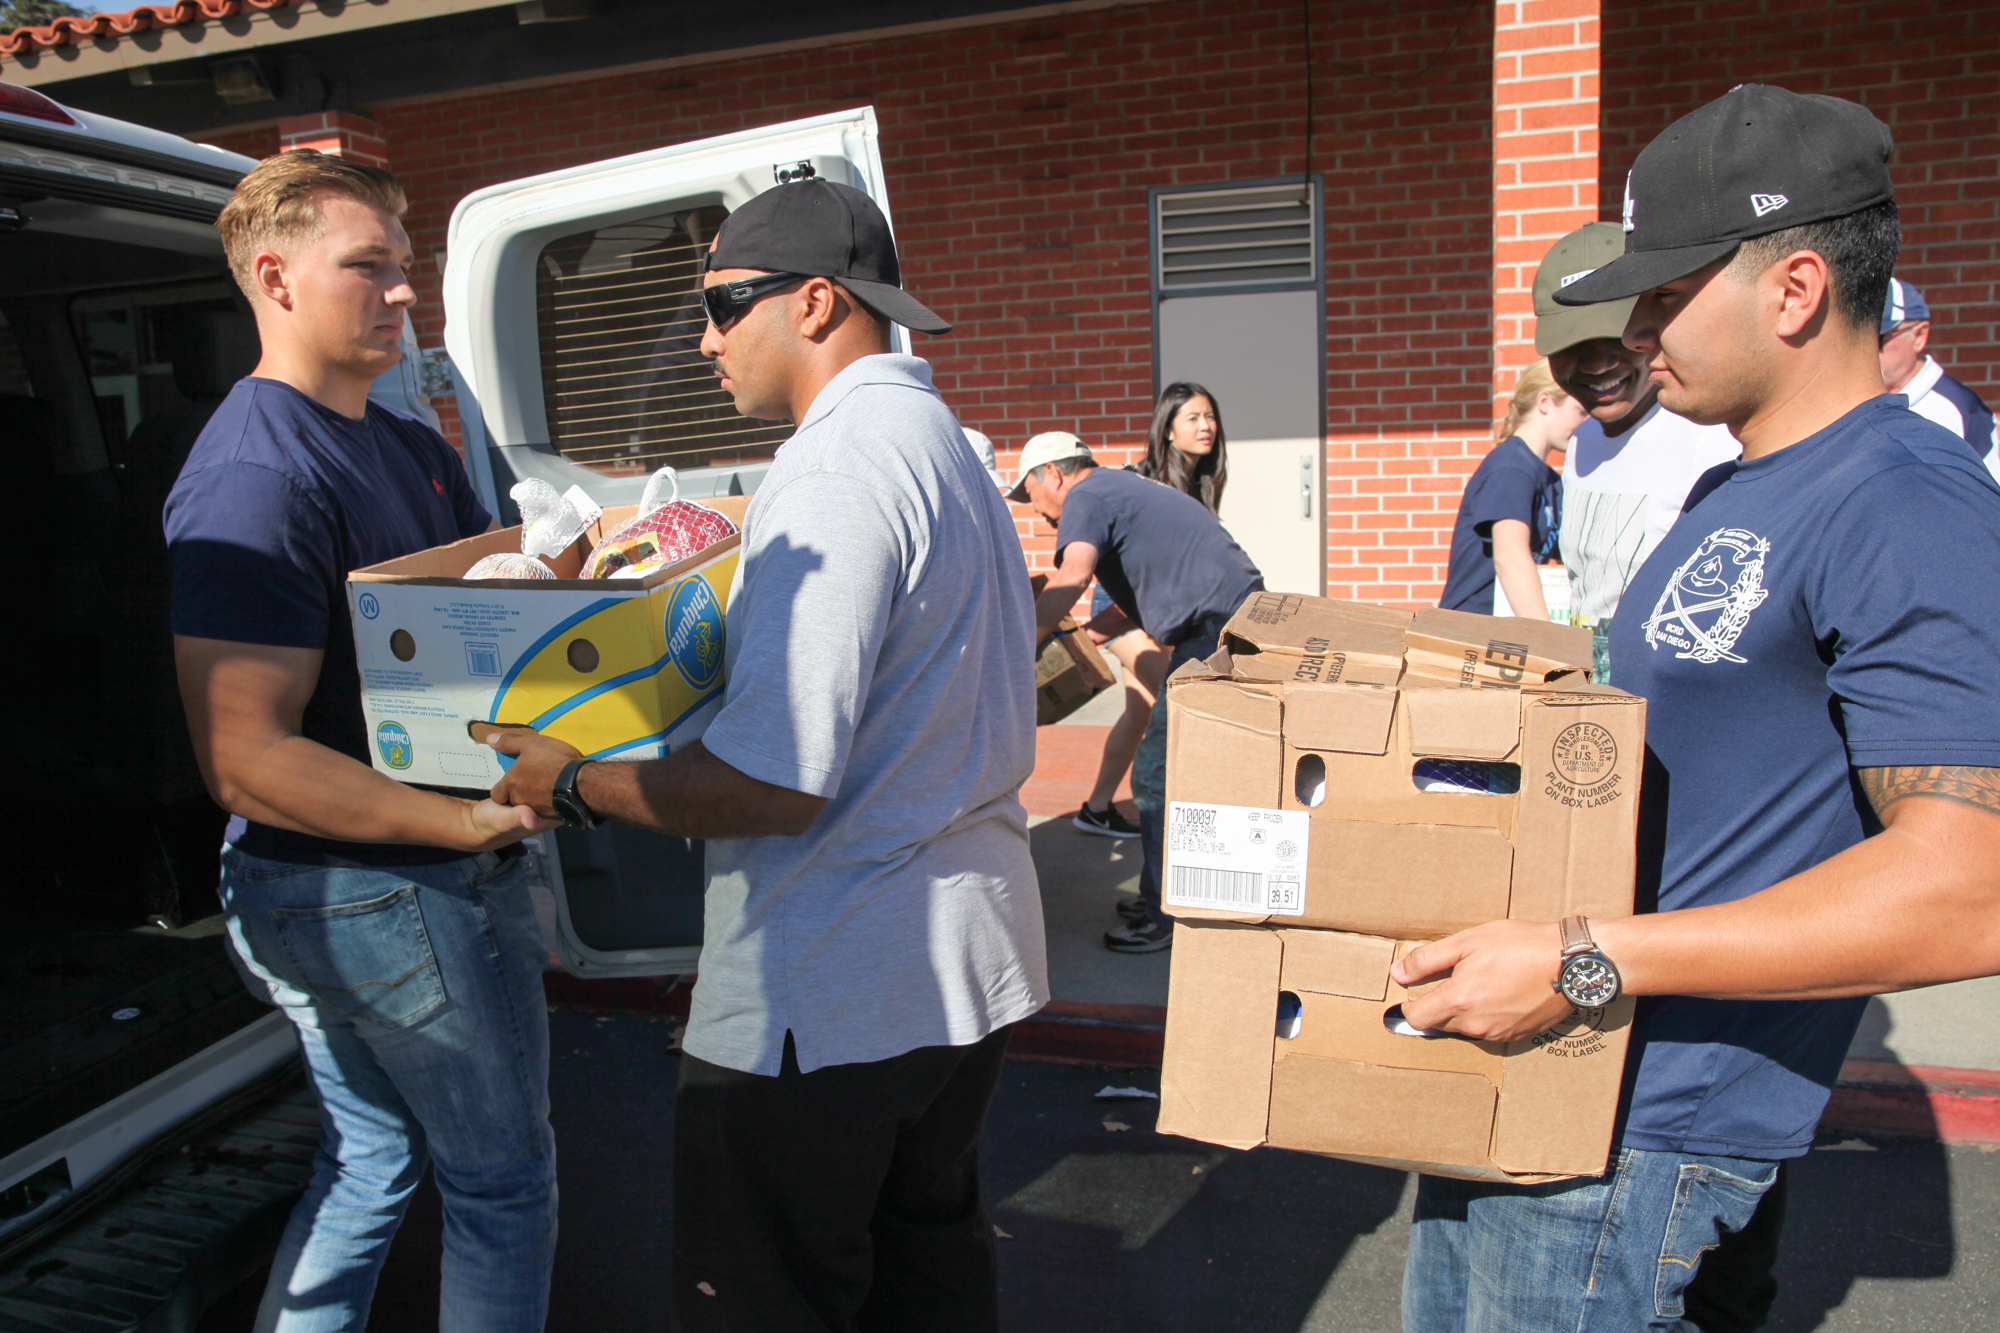 Marines collect meals packed by SJC Rotary Club members and student volunteers for families of the 1st Battalion, 11th Marines. Photo: Allison Jarrell